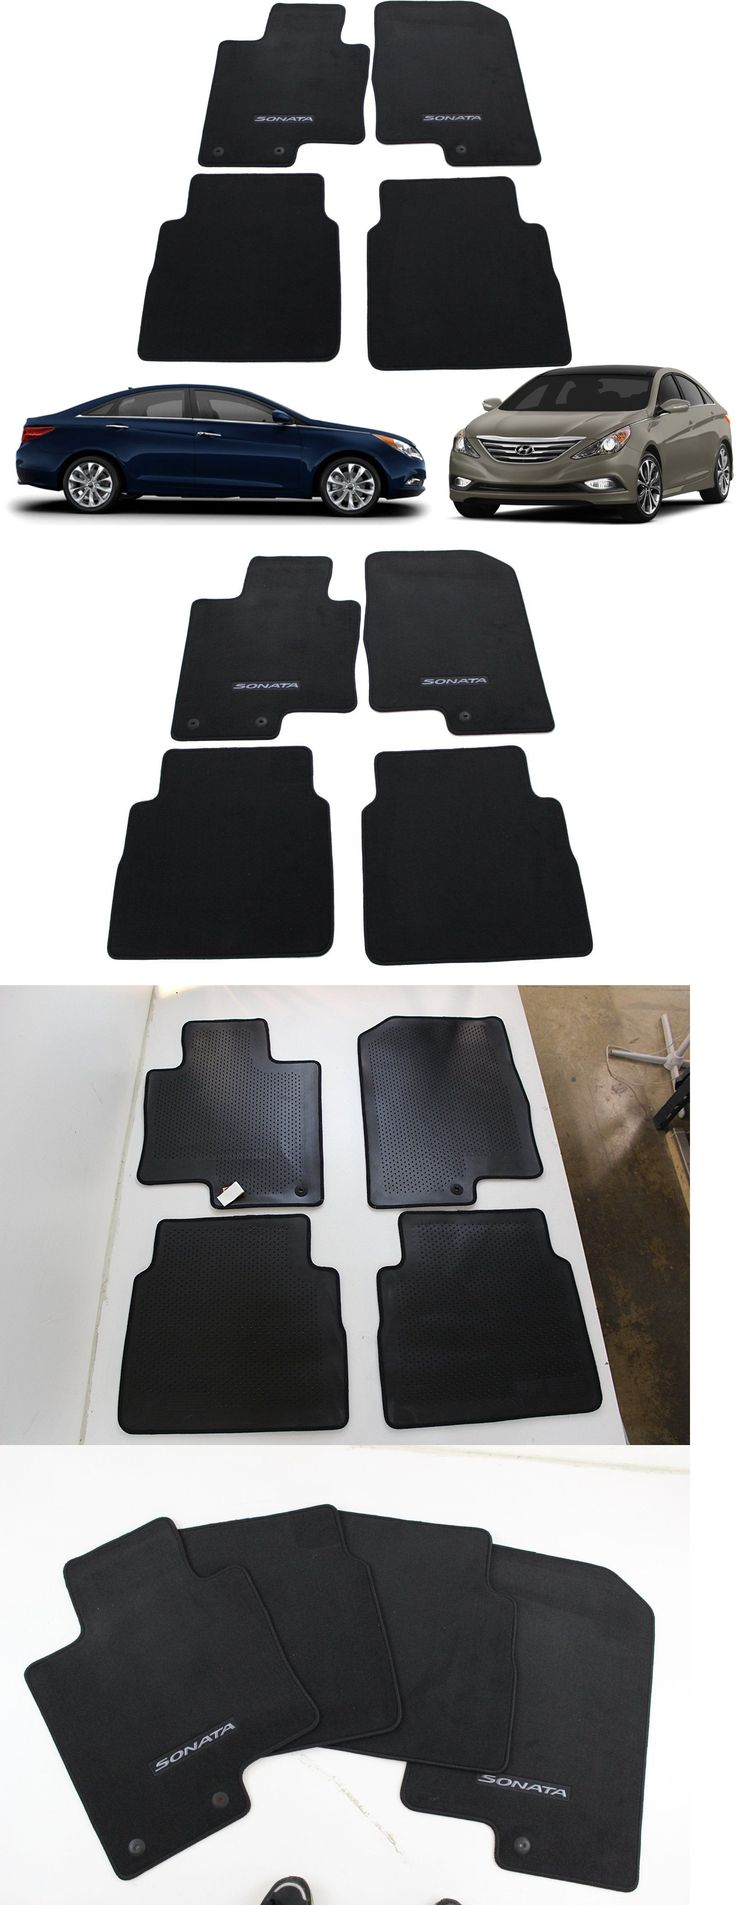 Floor mats dream cars - Auto Parts General Oem Genuine Front And Rear Floor Mats For 2011 2014